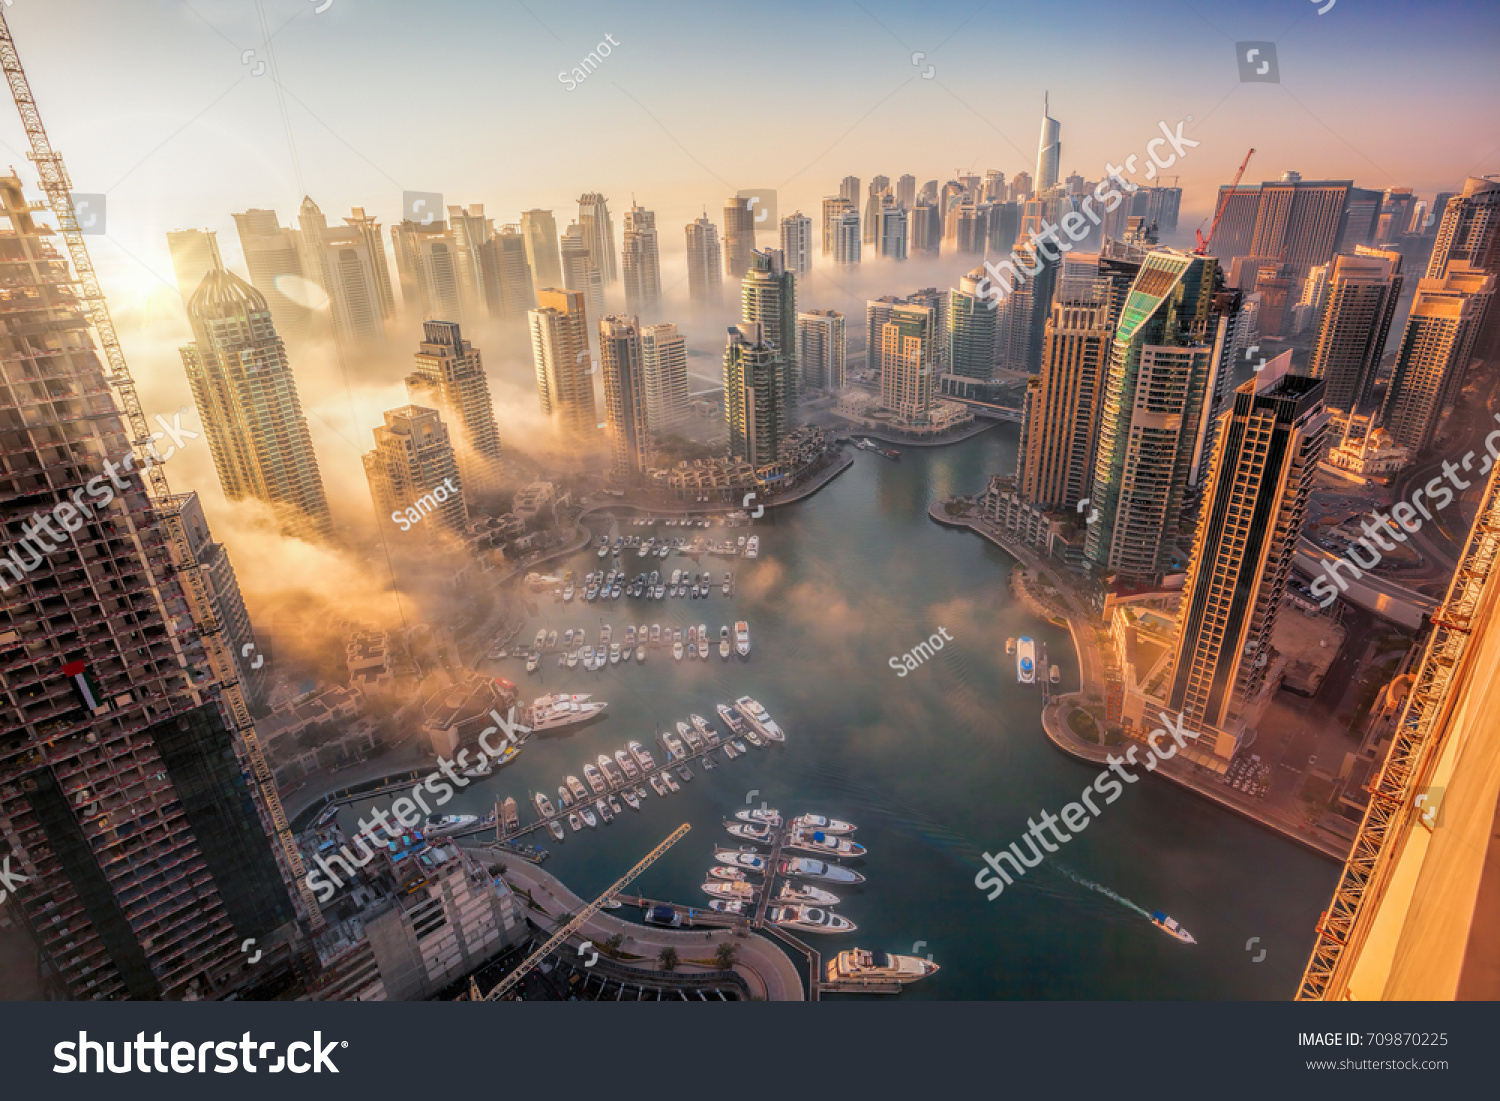 Dubai Marina with colorful sunset in Dubai, United Arab Emirates #709870225